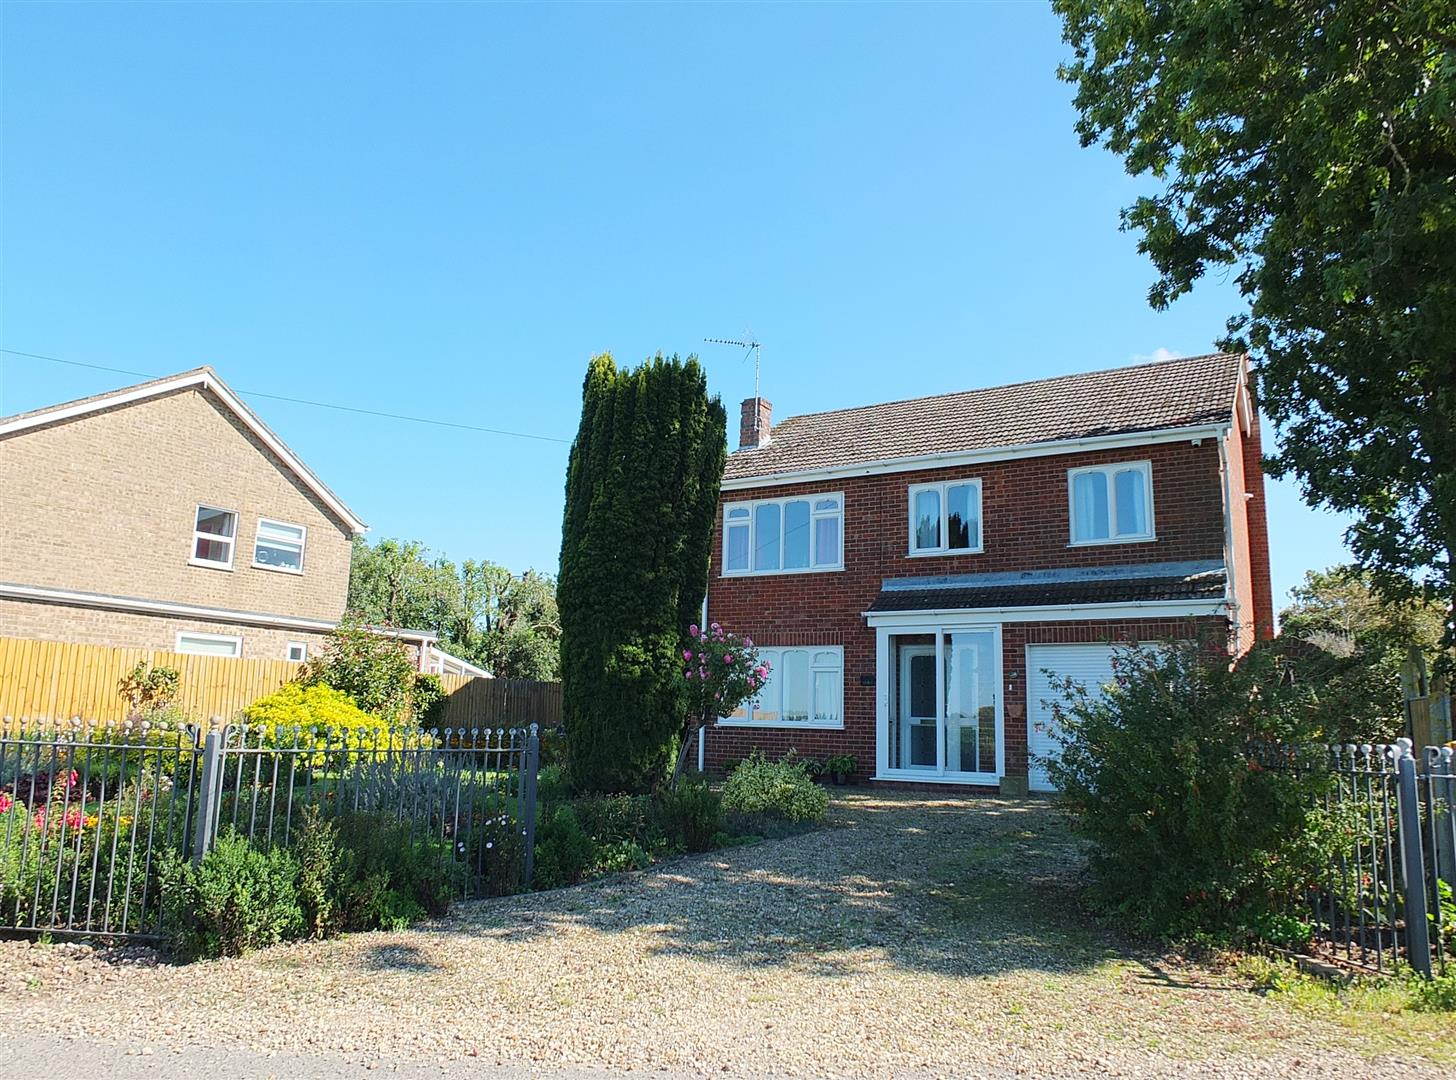 4 bed detached house for sale in Long Sutton Spalding, PE12 9DN - Property Image 1